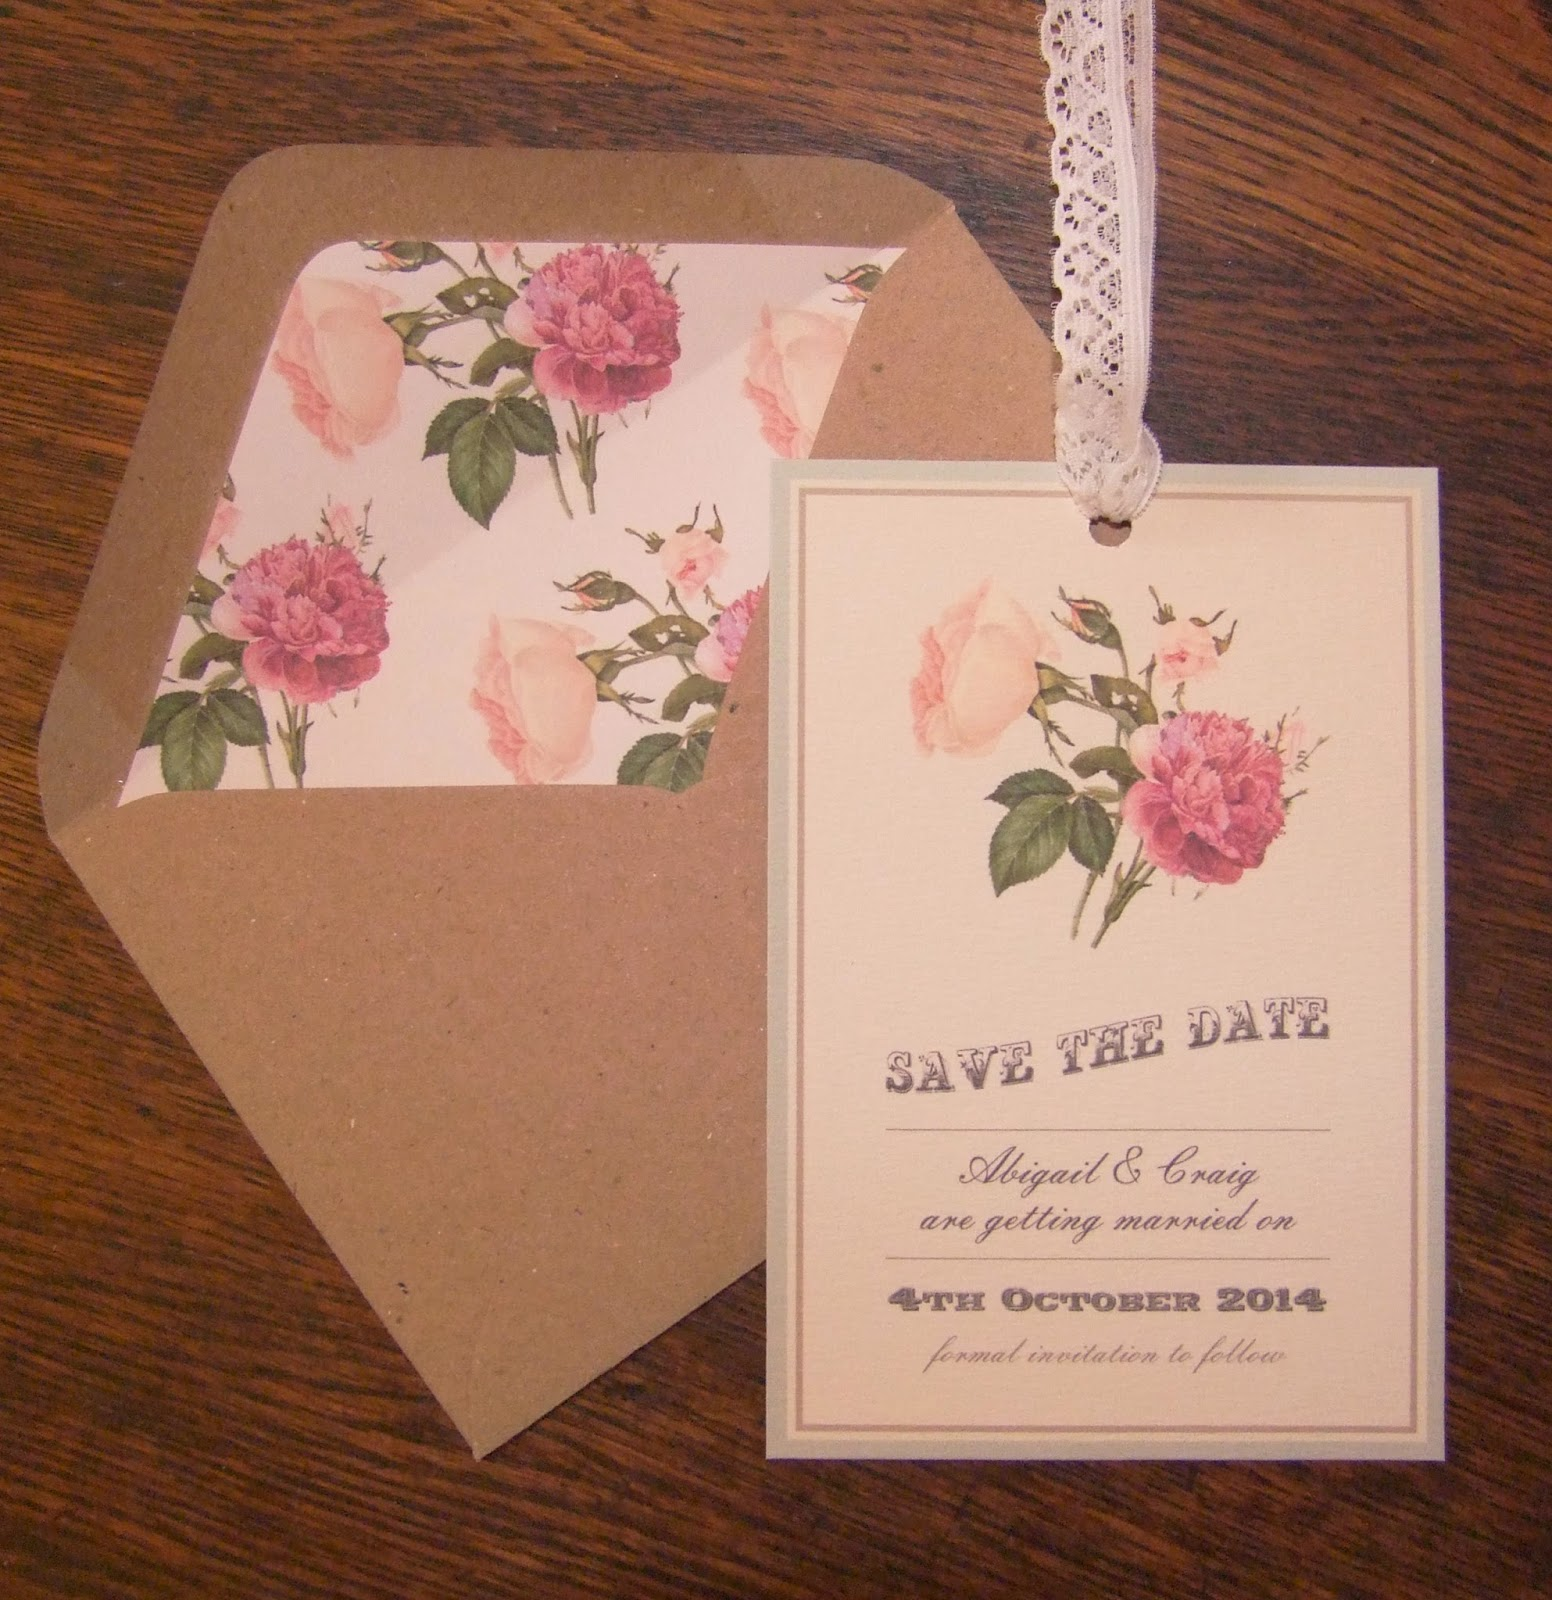 Knots And Kisses Wedding Stationery Vintage Floral Botanical Style Save The Date Cards